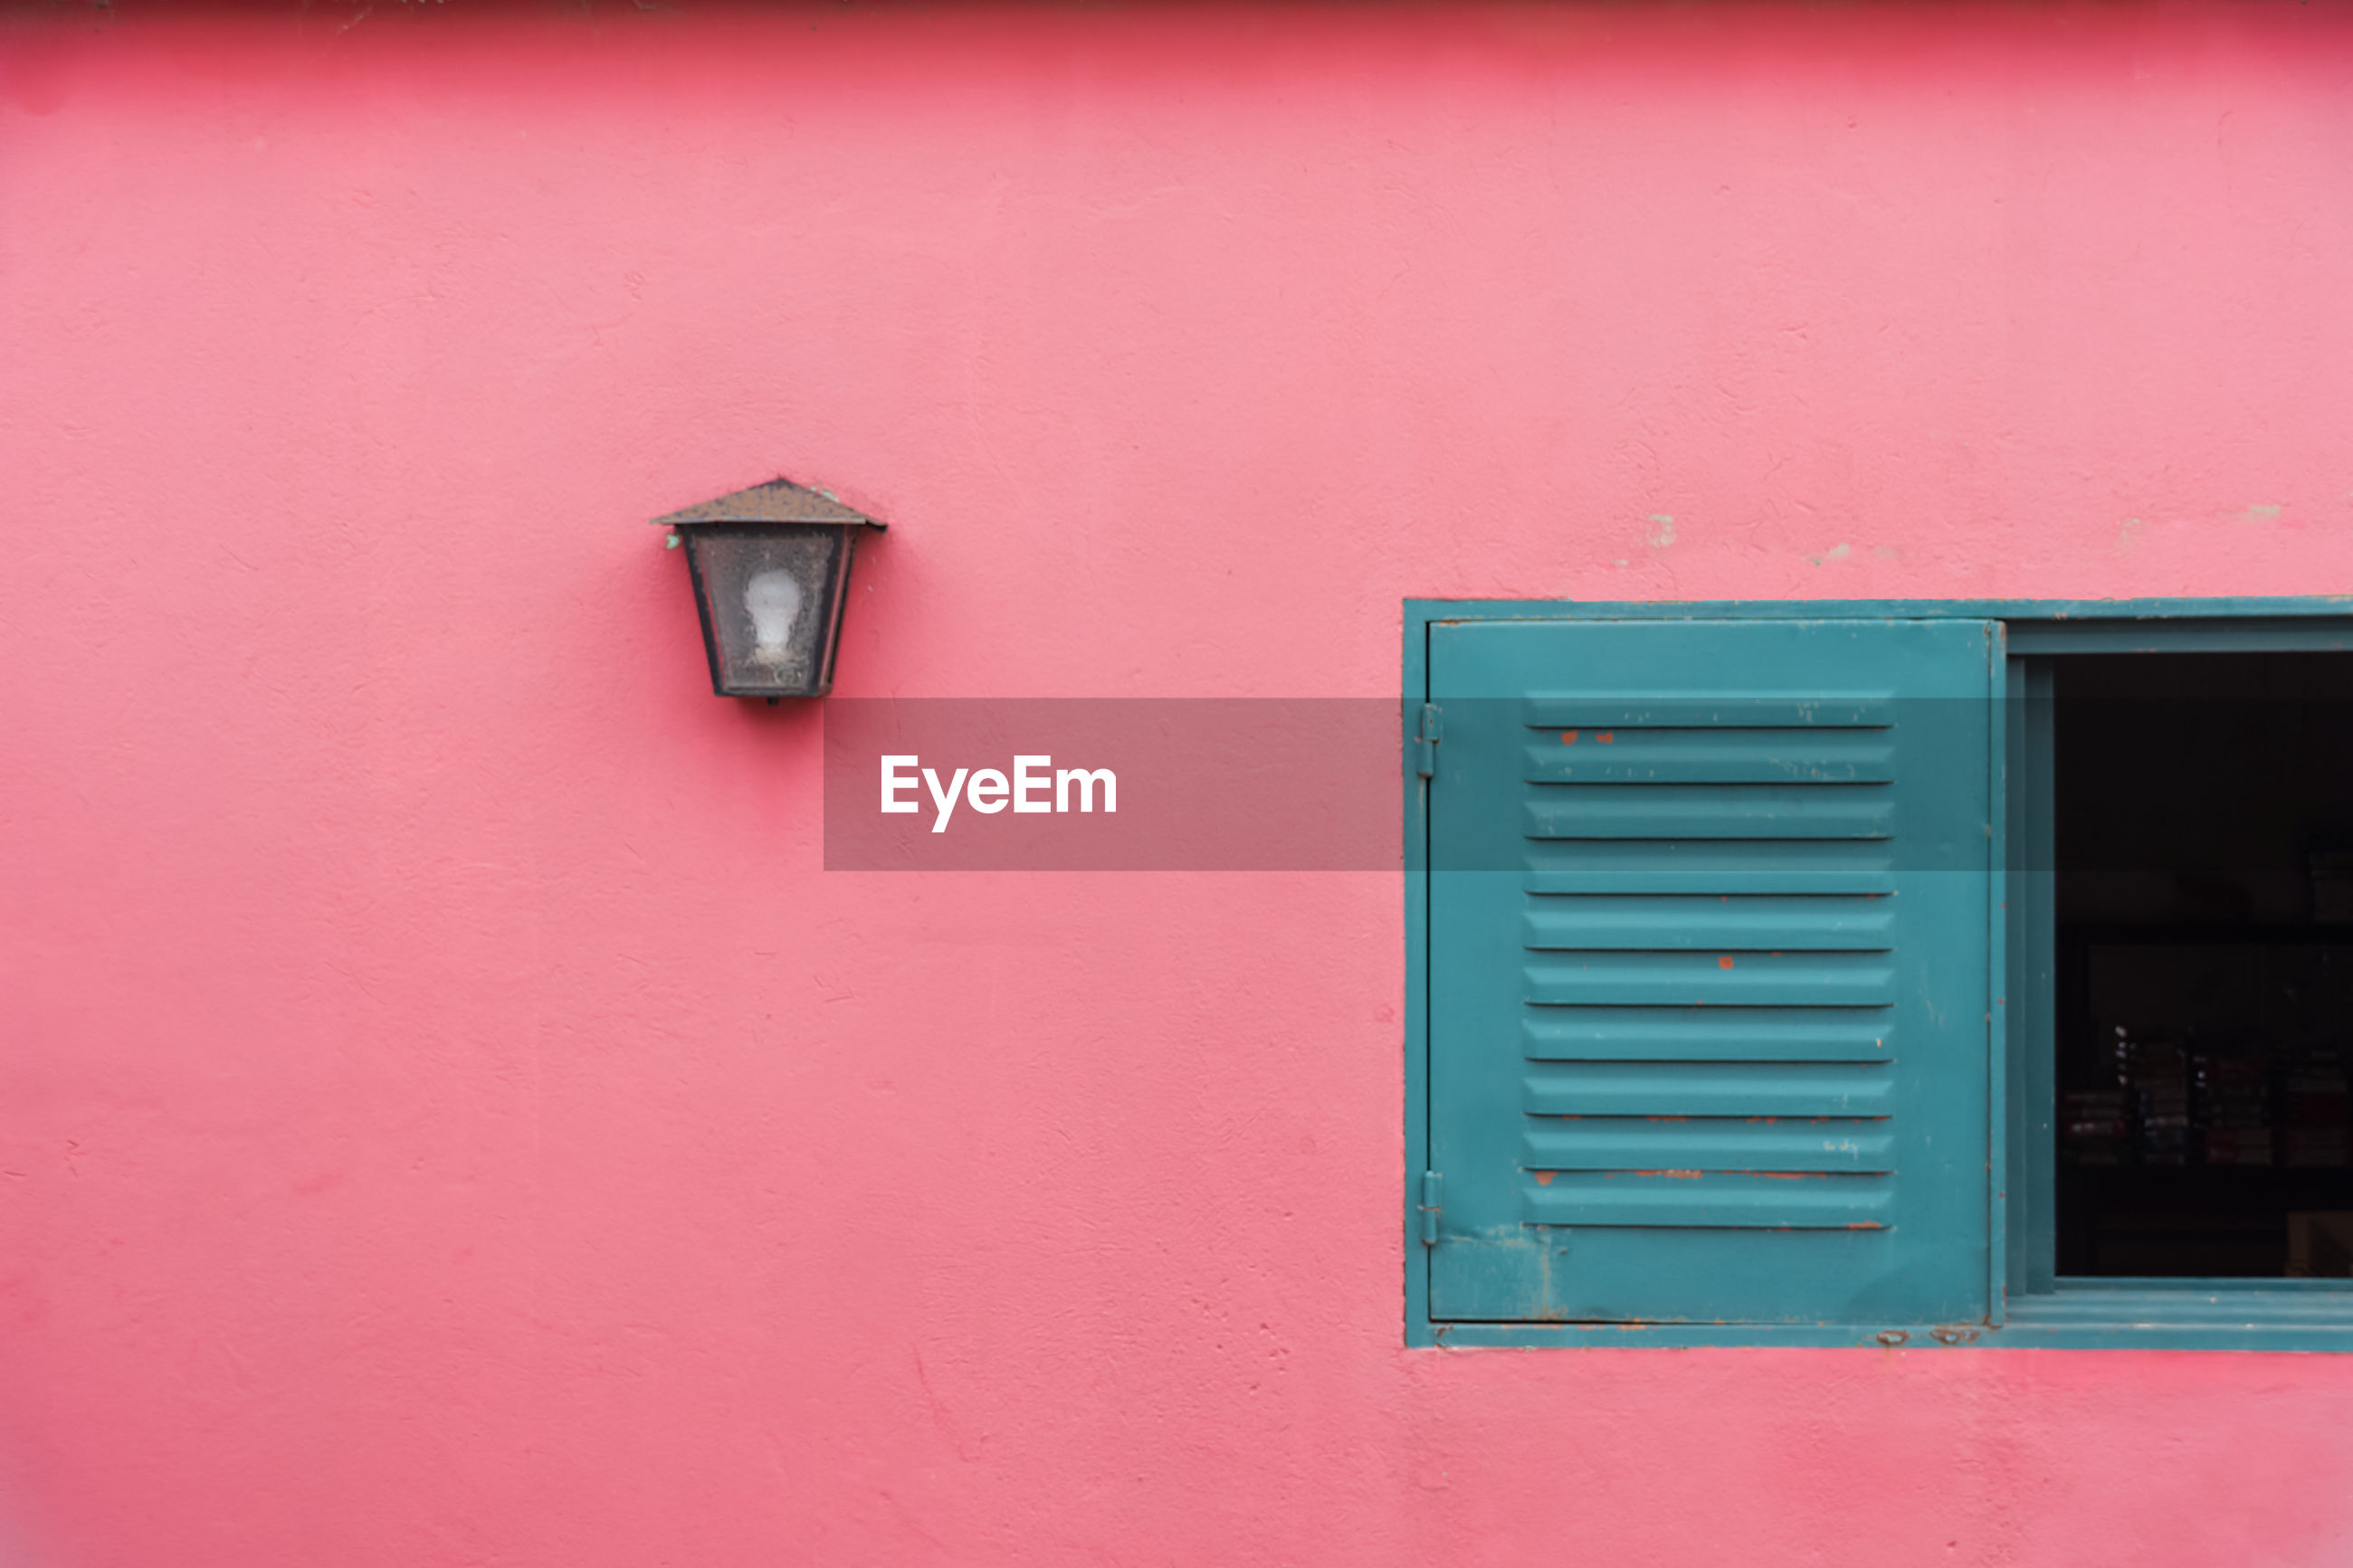 Scenic view of a closed windows next to a lamp on a pink wall